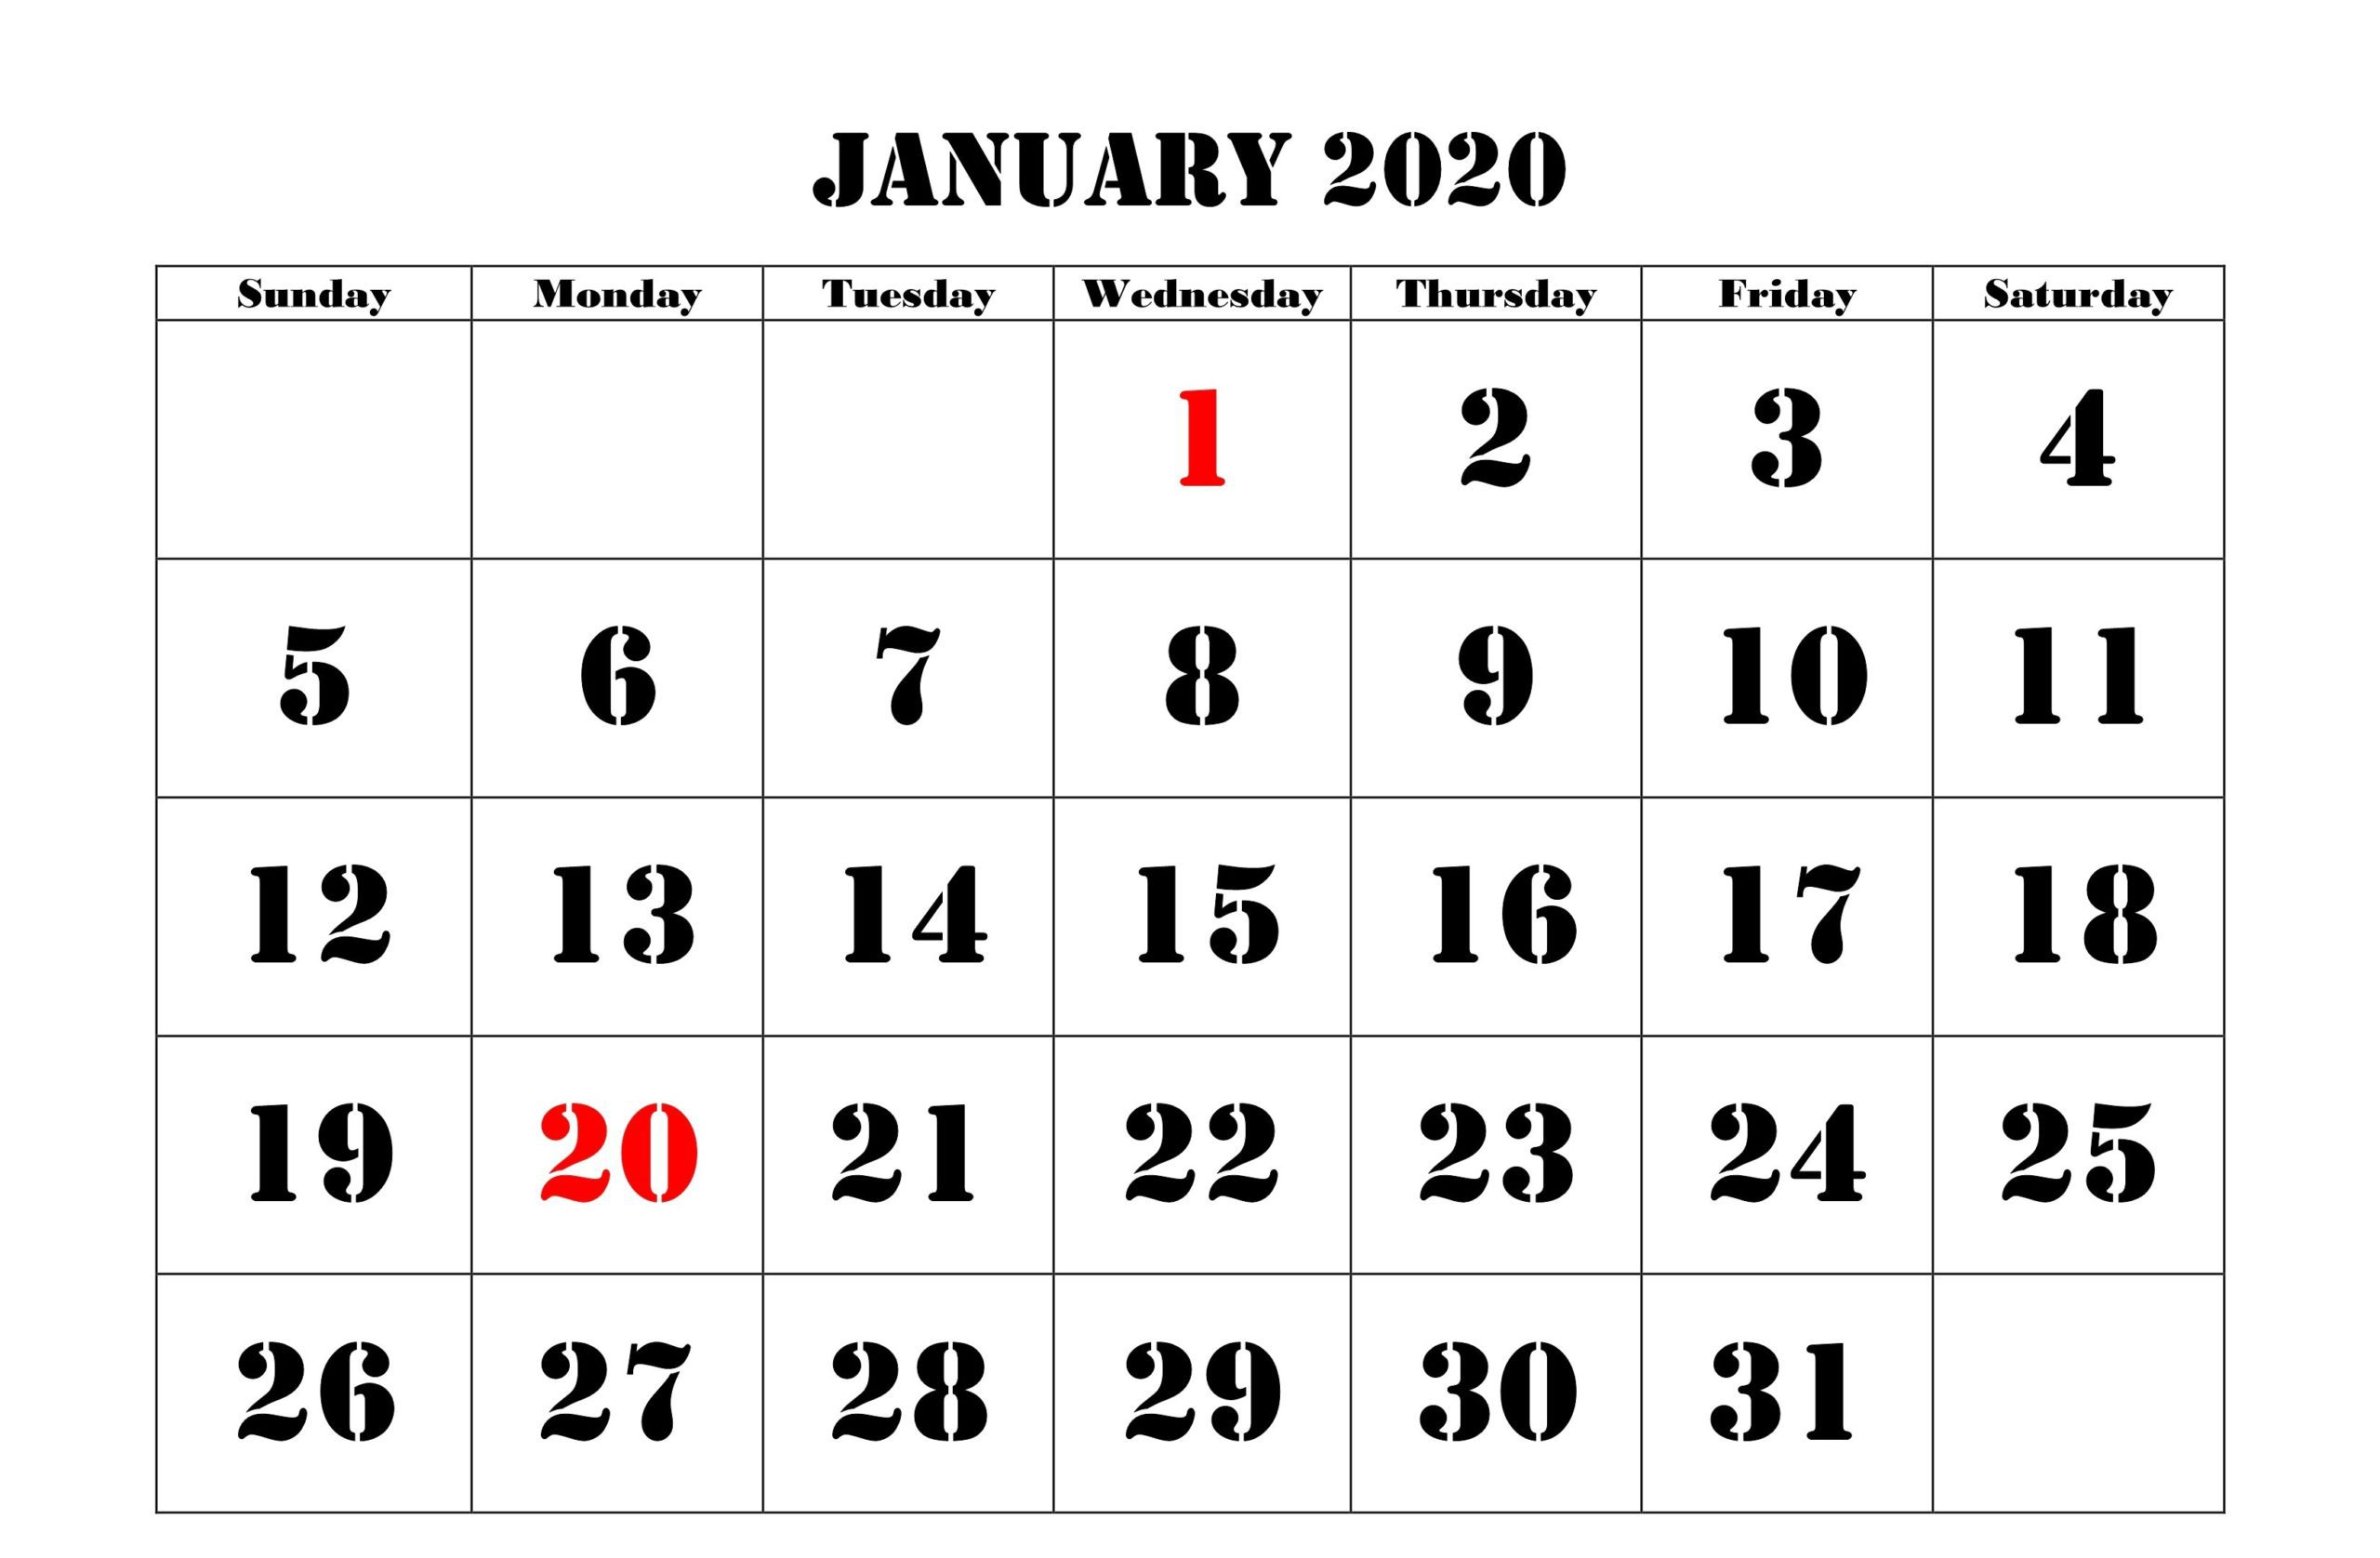 January 2020 Calendar Fillable Template